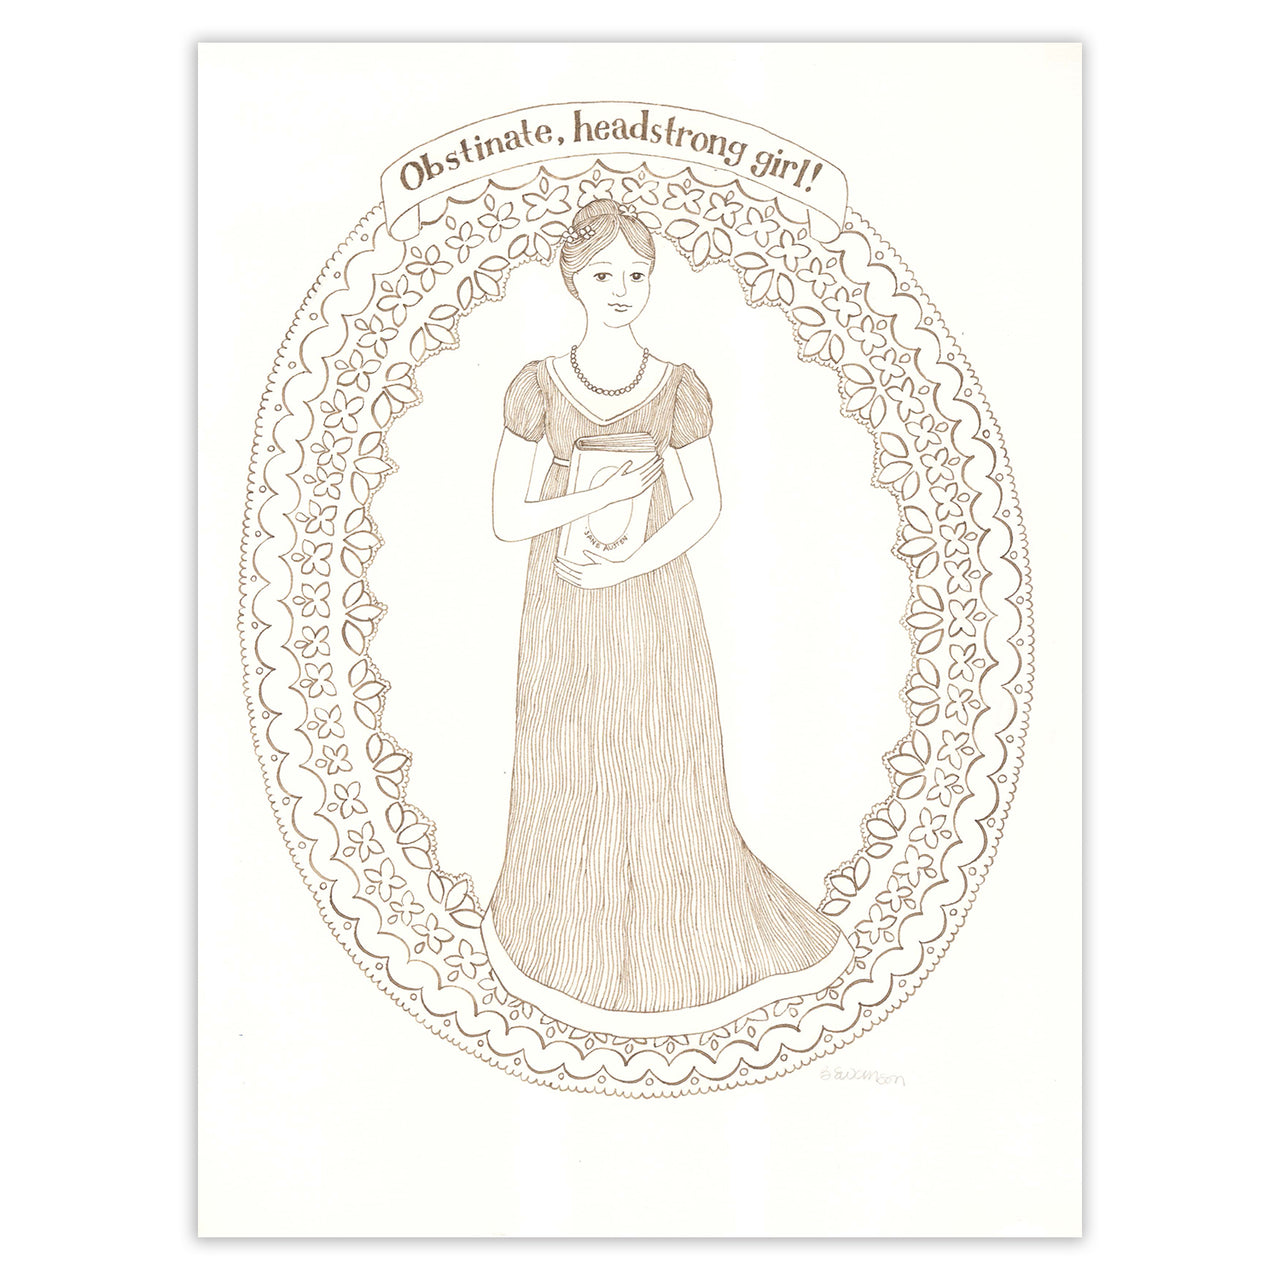 Jane Austen Obstinate and Headstrong Original Ink Drawing